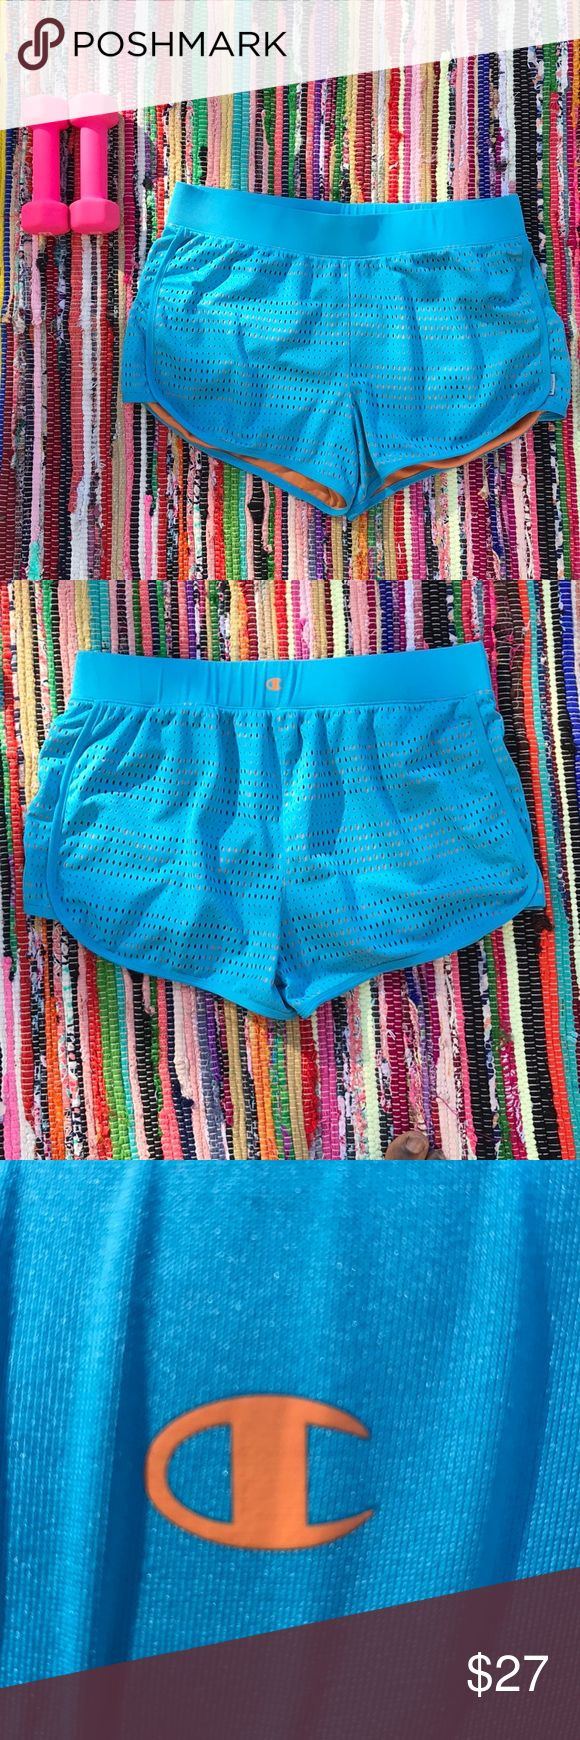 Champion Turquoise (Blue) and Orange Mesh Shorts EUC (Like New)  Champion Turquoise (Blue) and Orange Mesh Shorts 100% polyester. These shorts are spunky, sporty, and comfortable!   *Measurements*   Waist (not stretched): almost 17 1/2 inches  Length: a tiny bit over 12 inches Champion Shorts